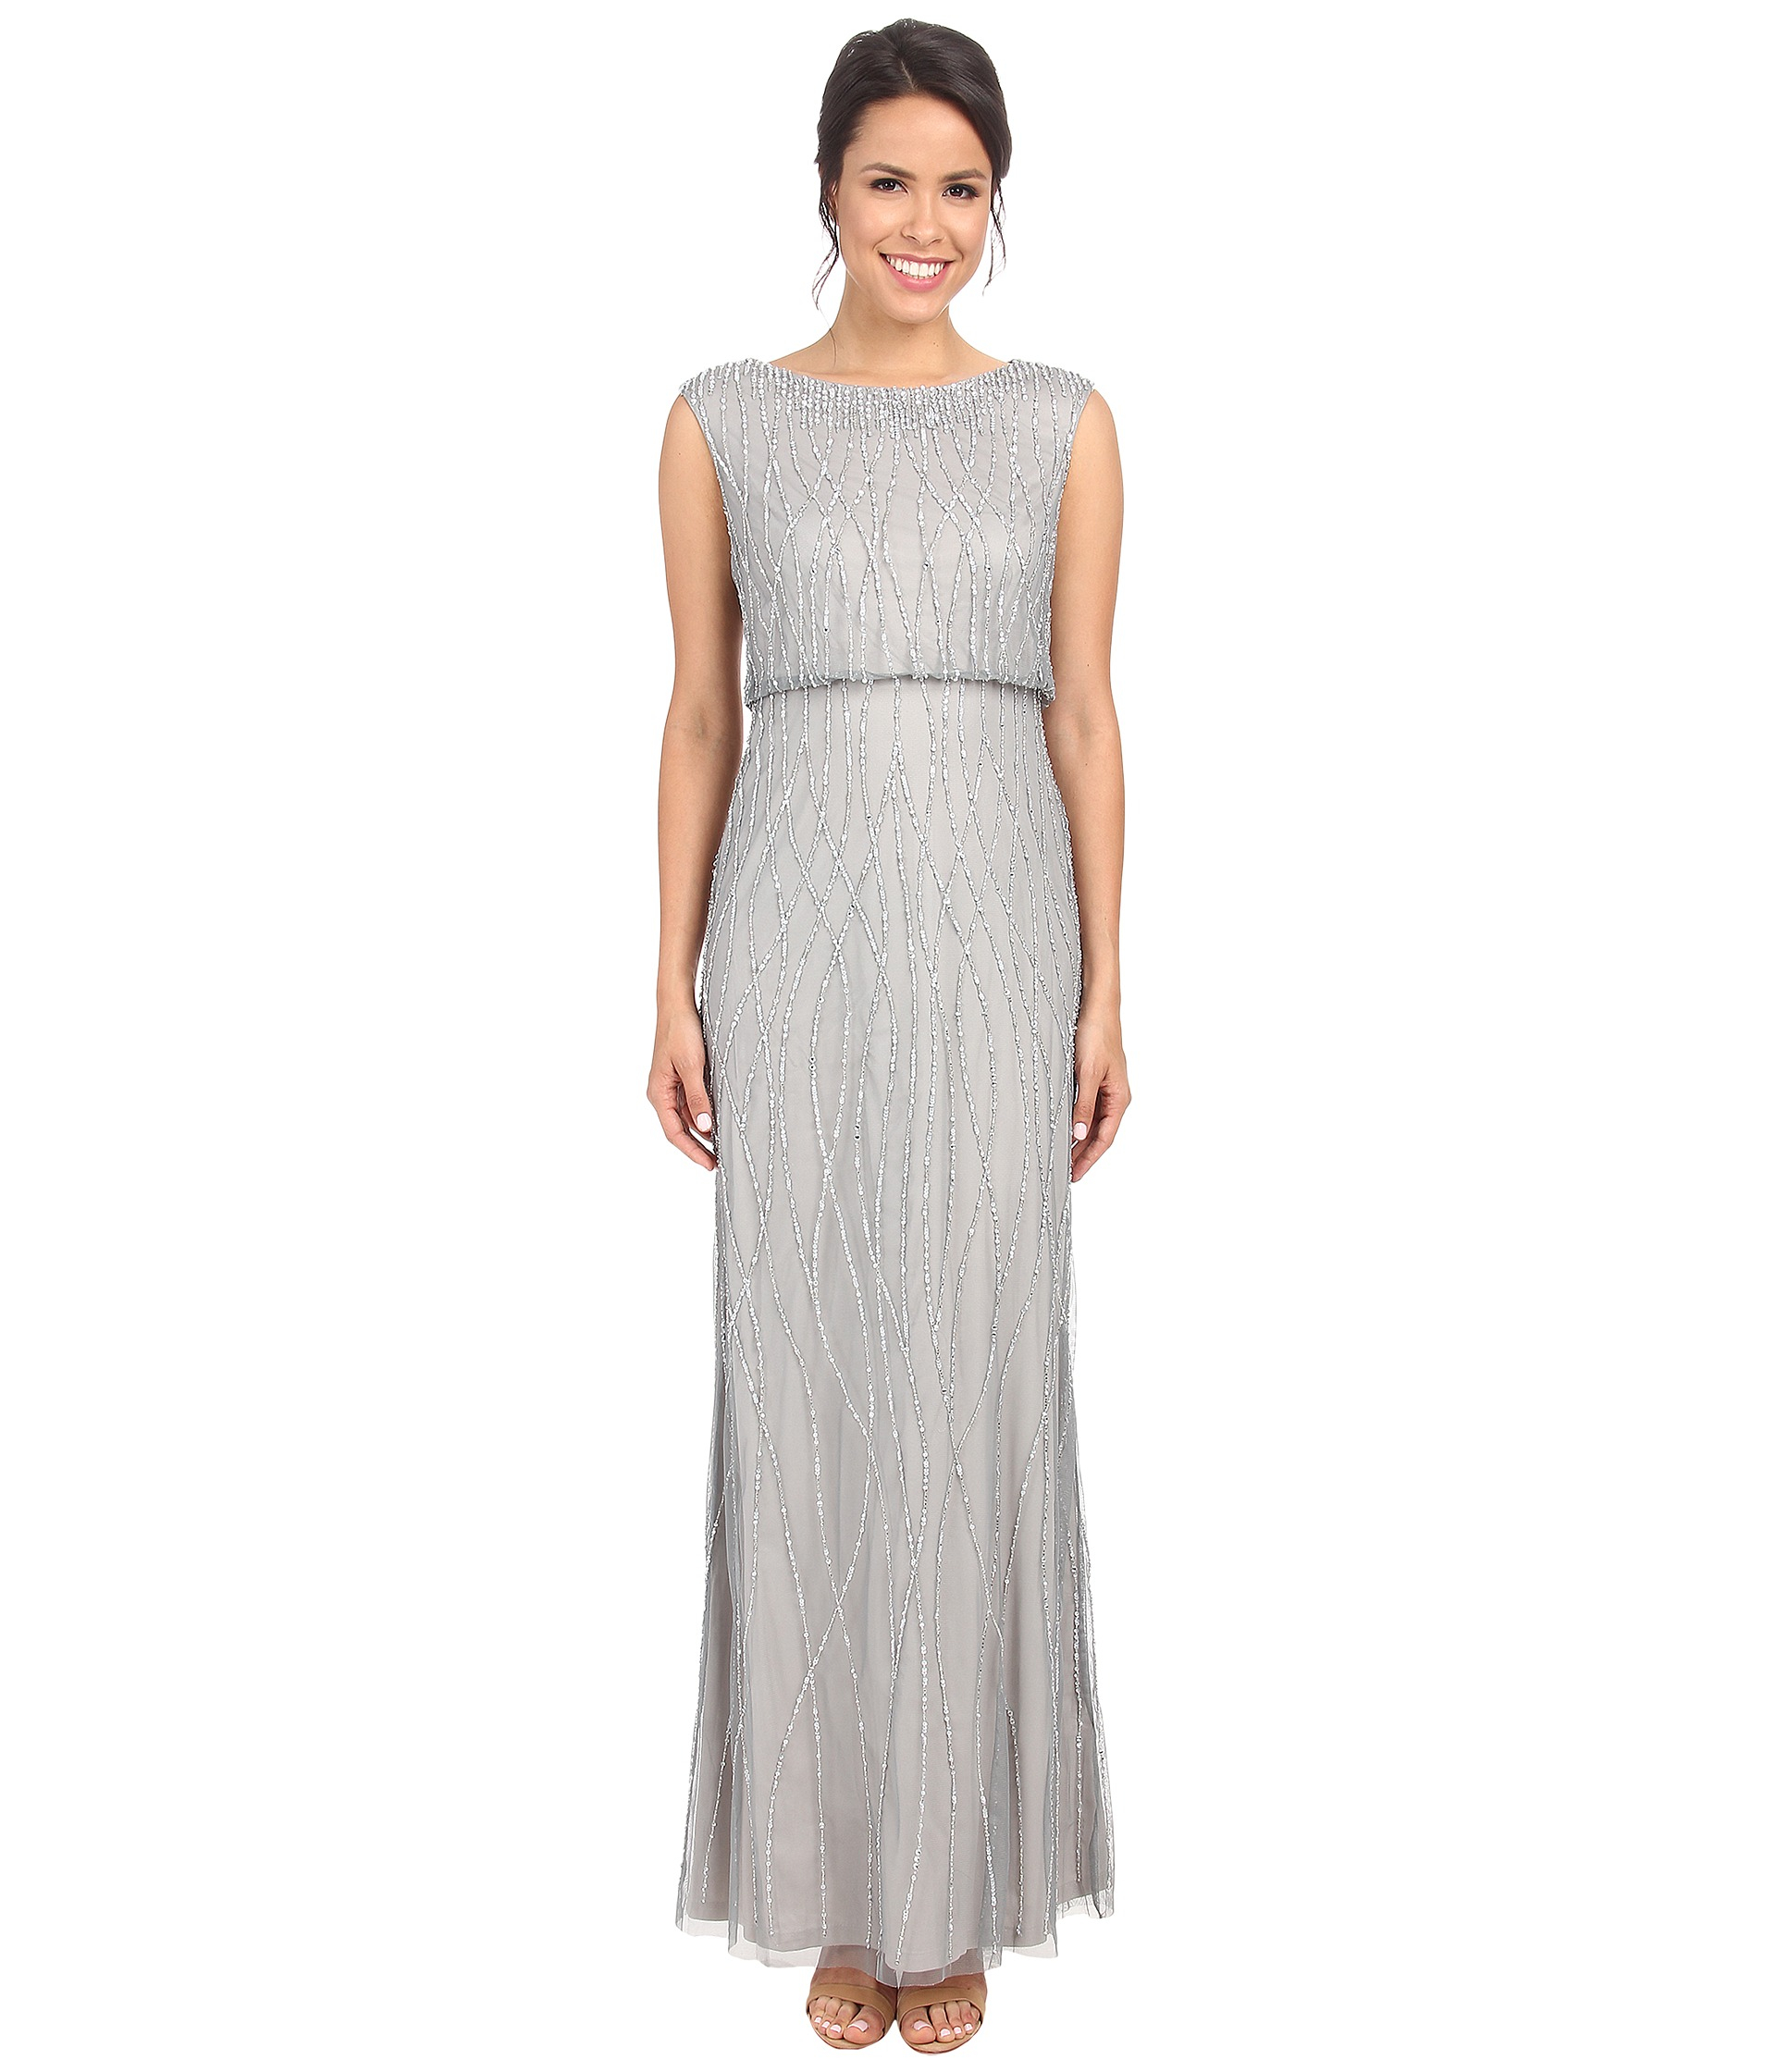 Montañas climáticas ajo Frente a ti  Adrianna Papell Synthetic Deco Vine Beaded Gown in Slate (Gray) - Lyst